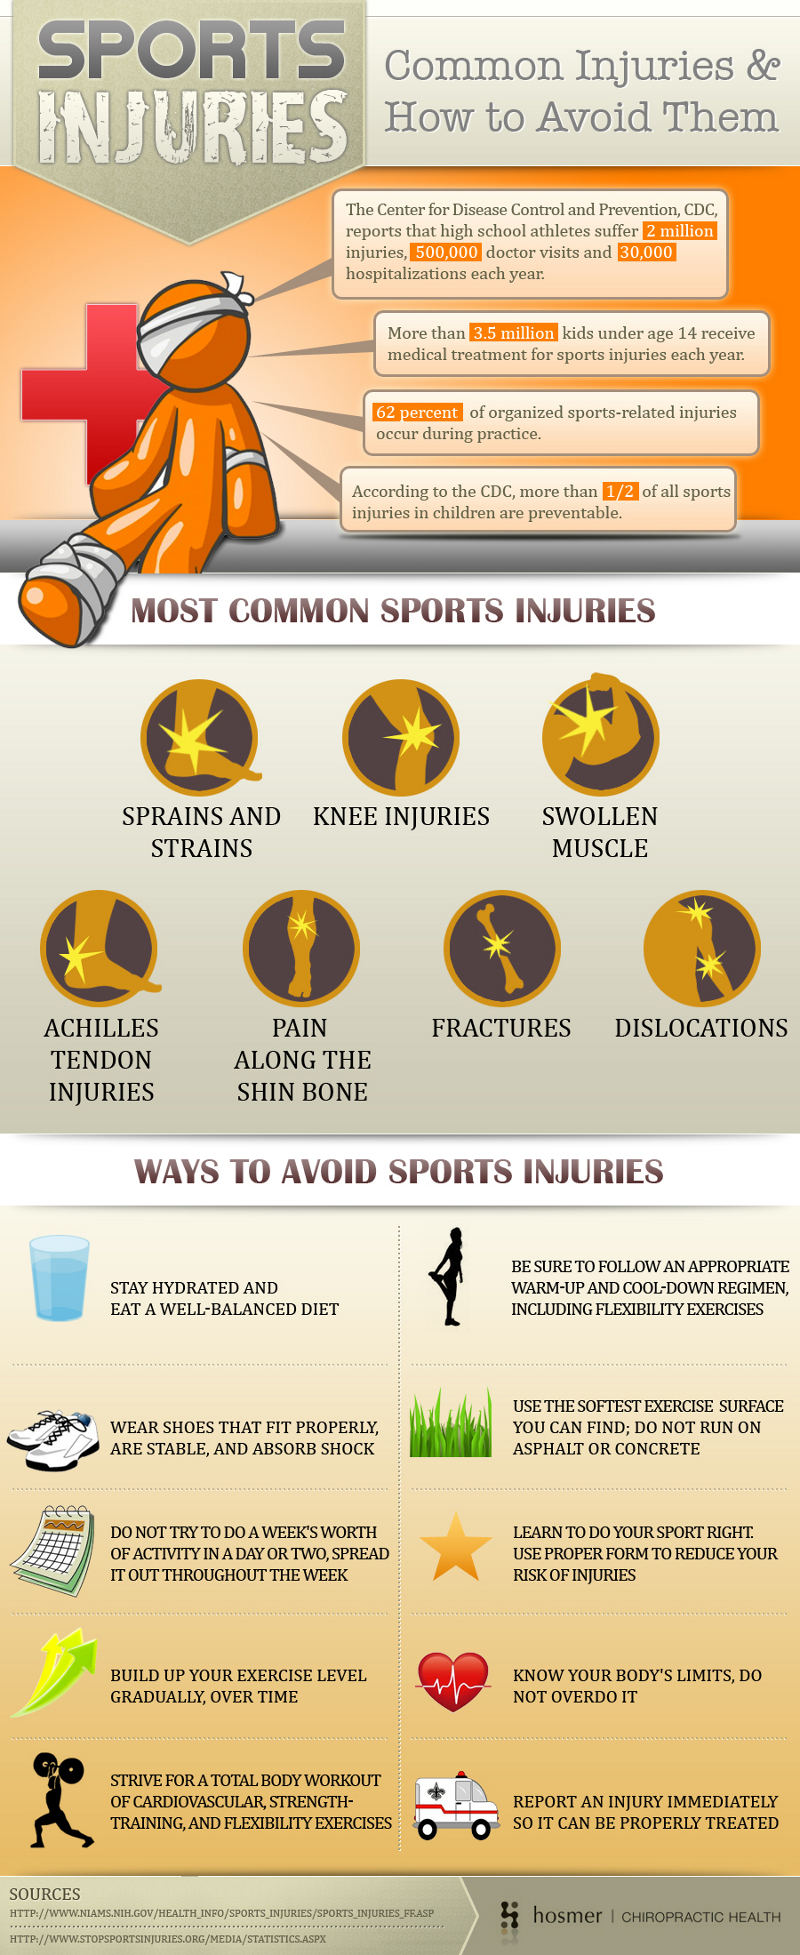 How to Avoid Common Sports Injuries